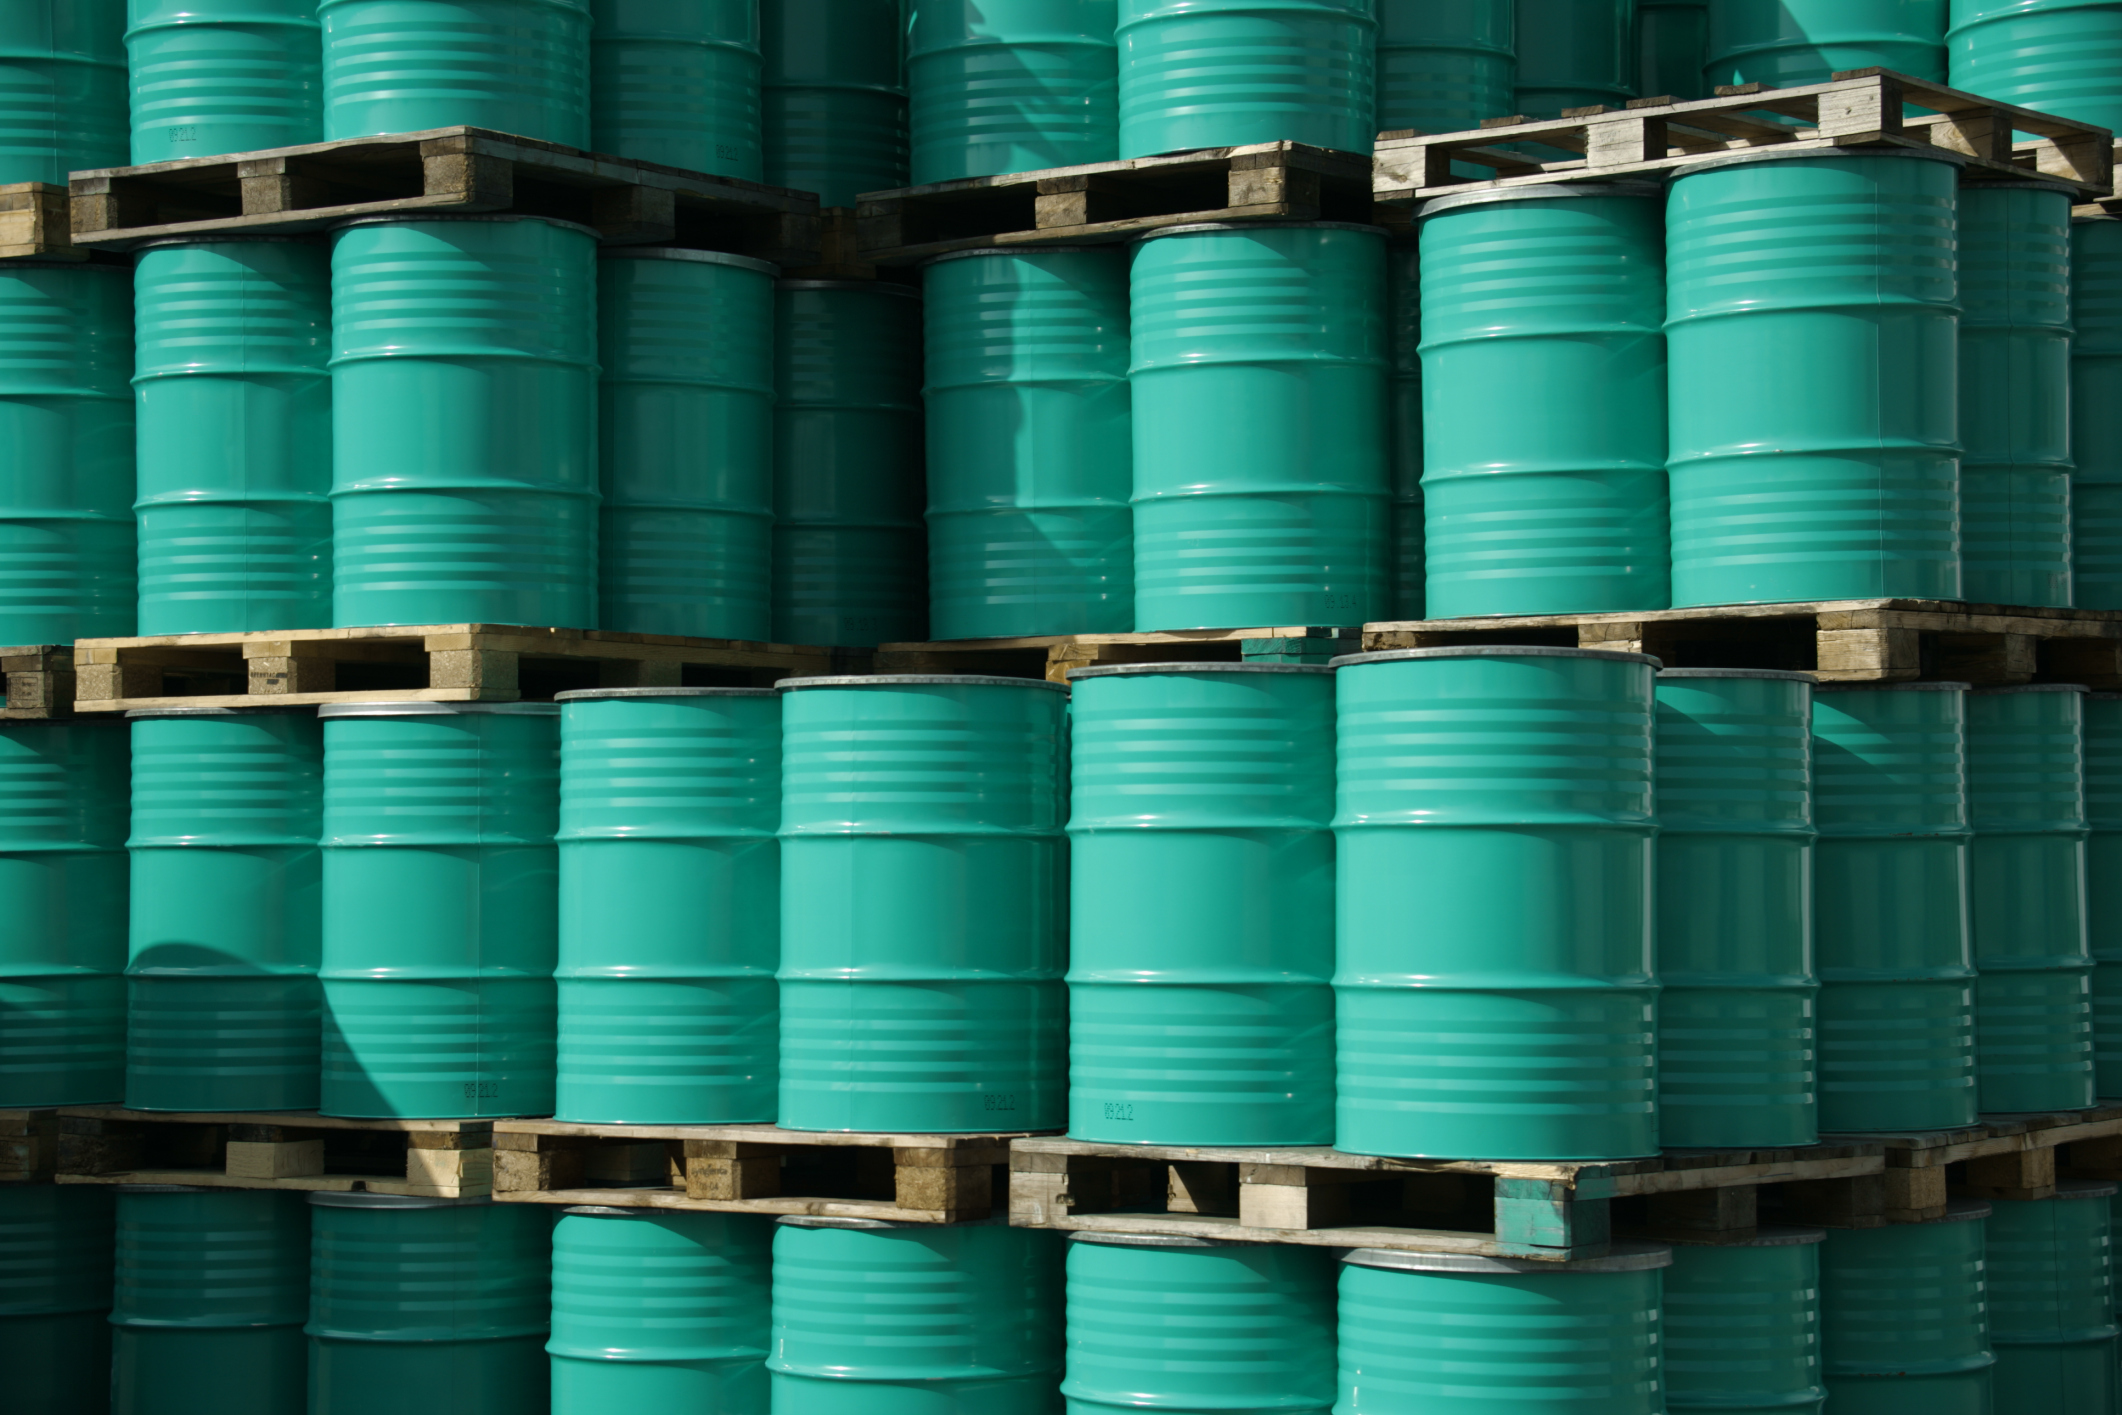 The price of a barrel of oil is predicted to remain below $100 for the next few years.